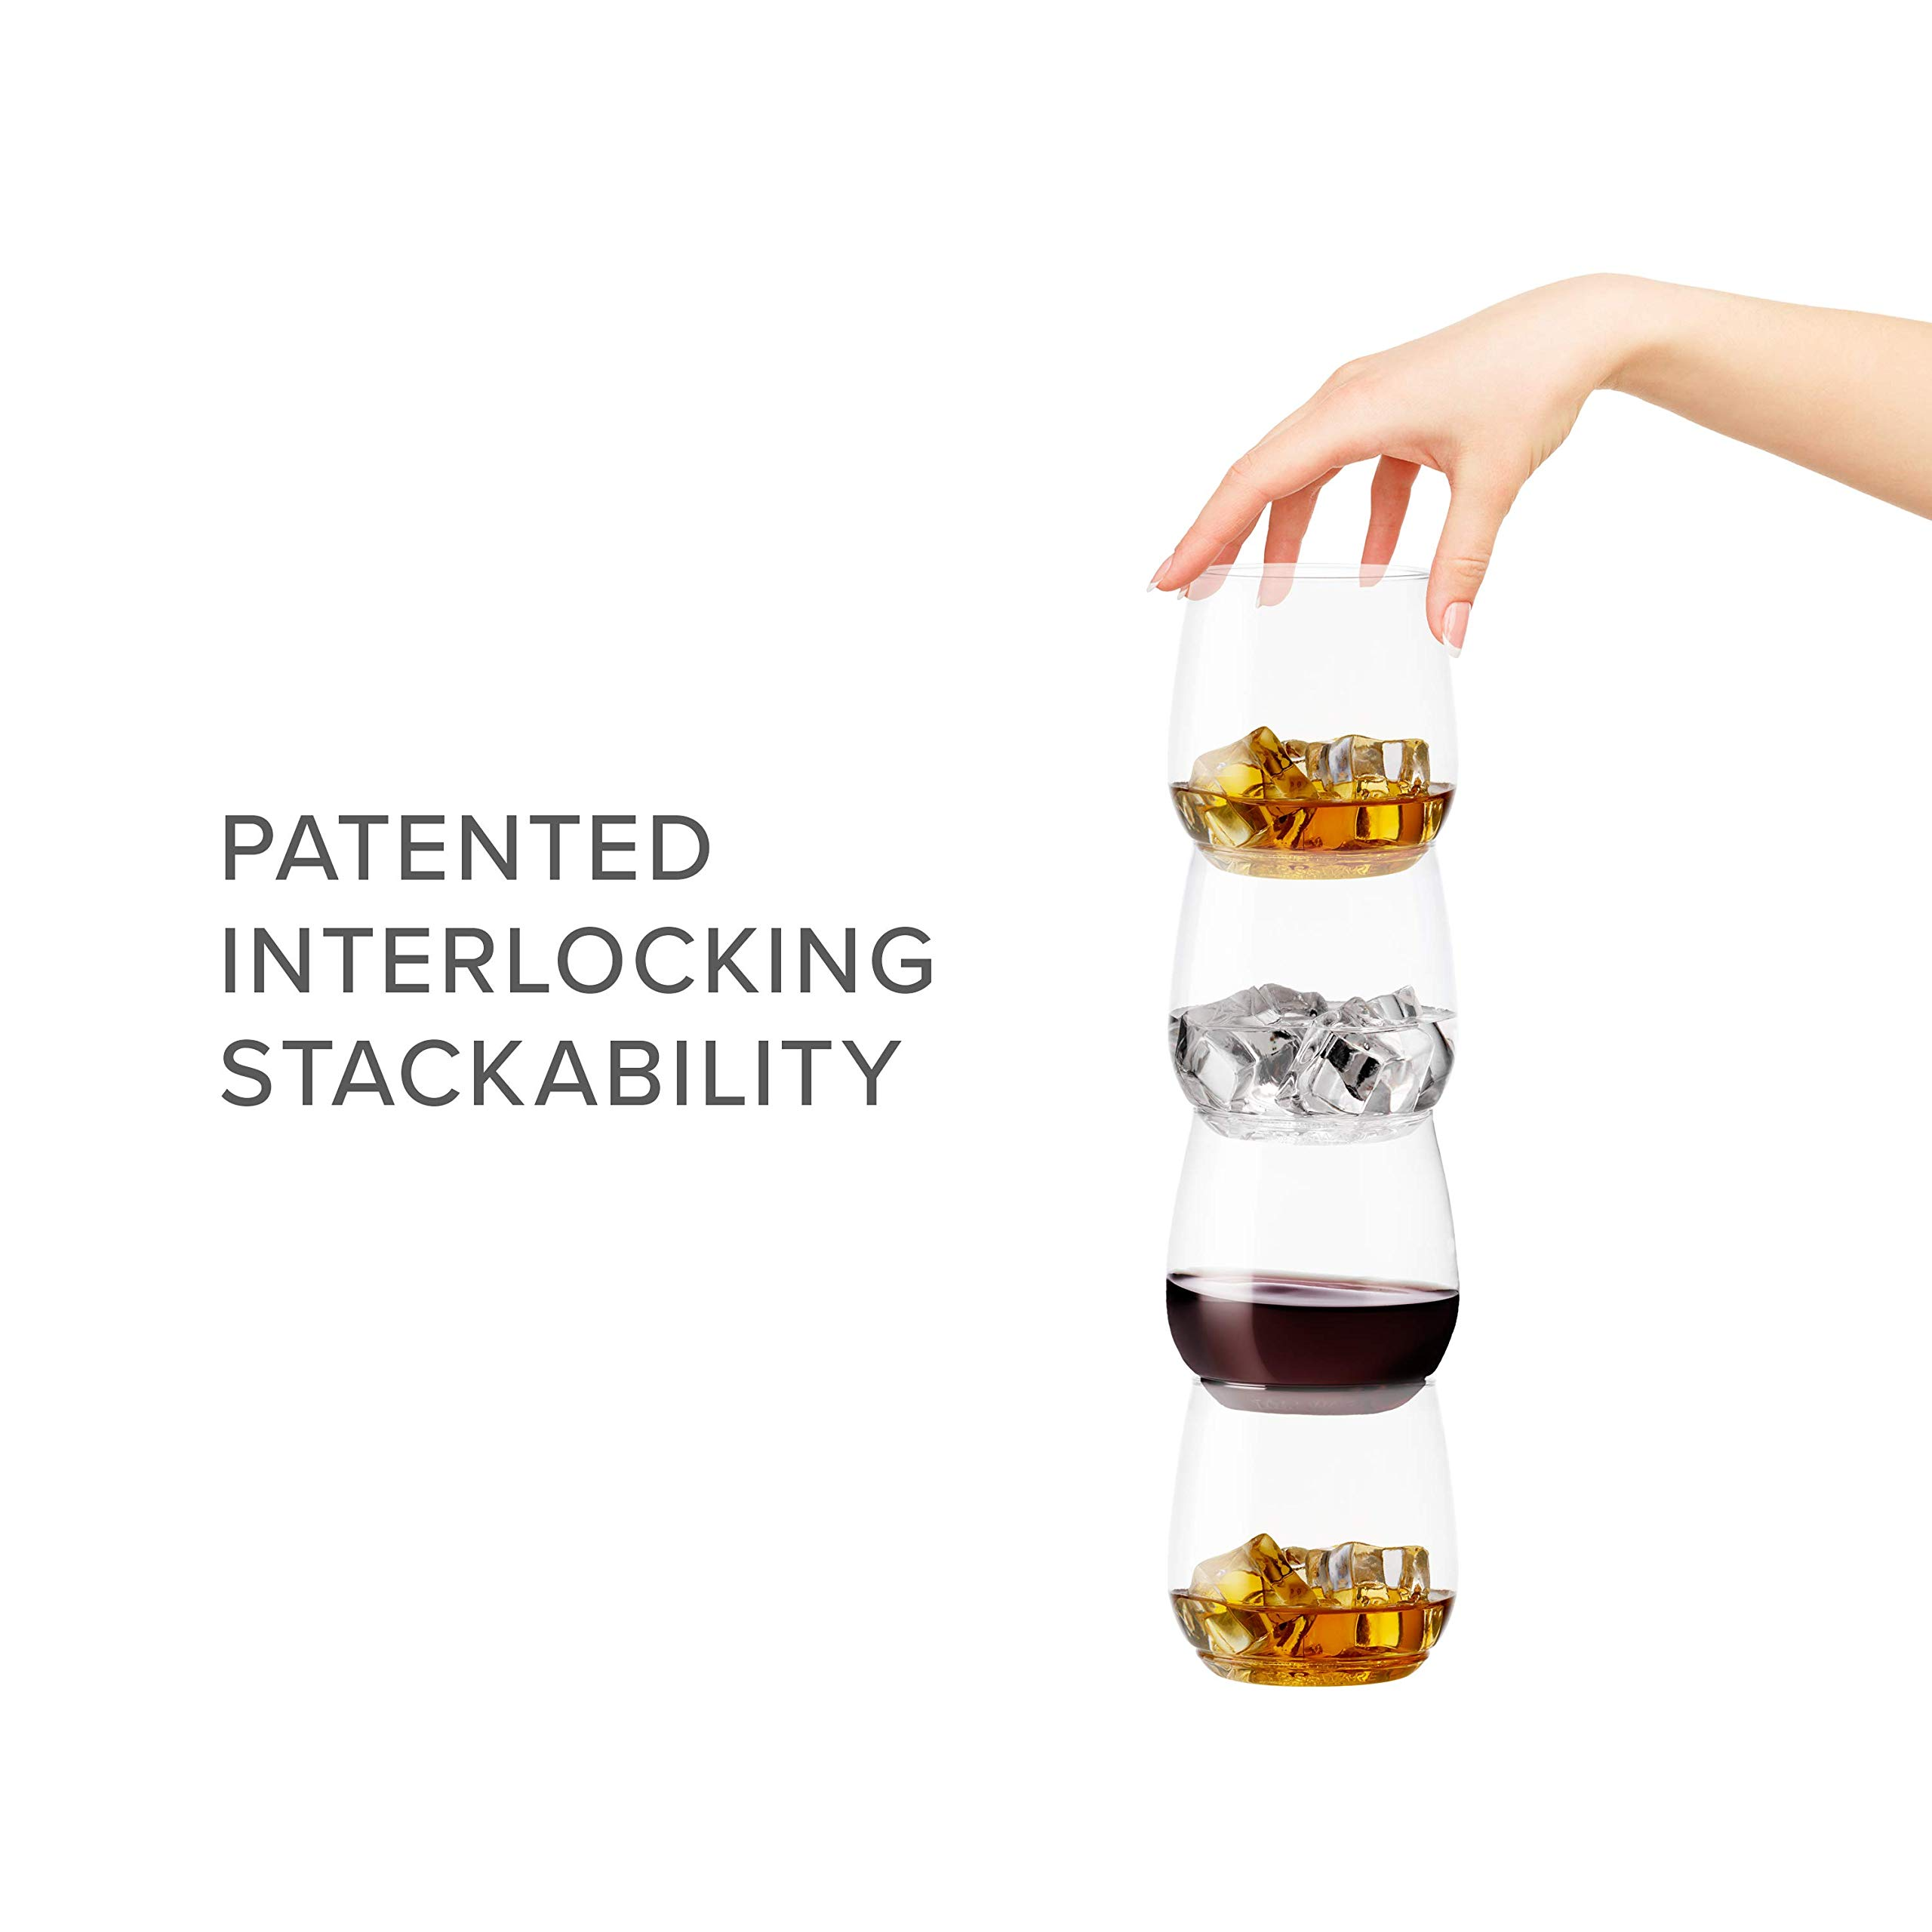 TOSSWARE 12oz Tumbler Jr - recyclable cocktail and whiskey plastic cup - SET OF 48 - stemless, shatterproof and BPA-free whiskey glasses by TOSSWARE (Image #2)